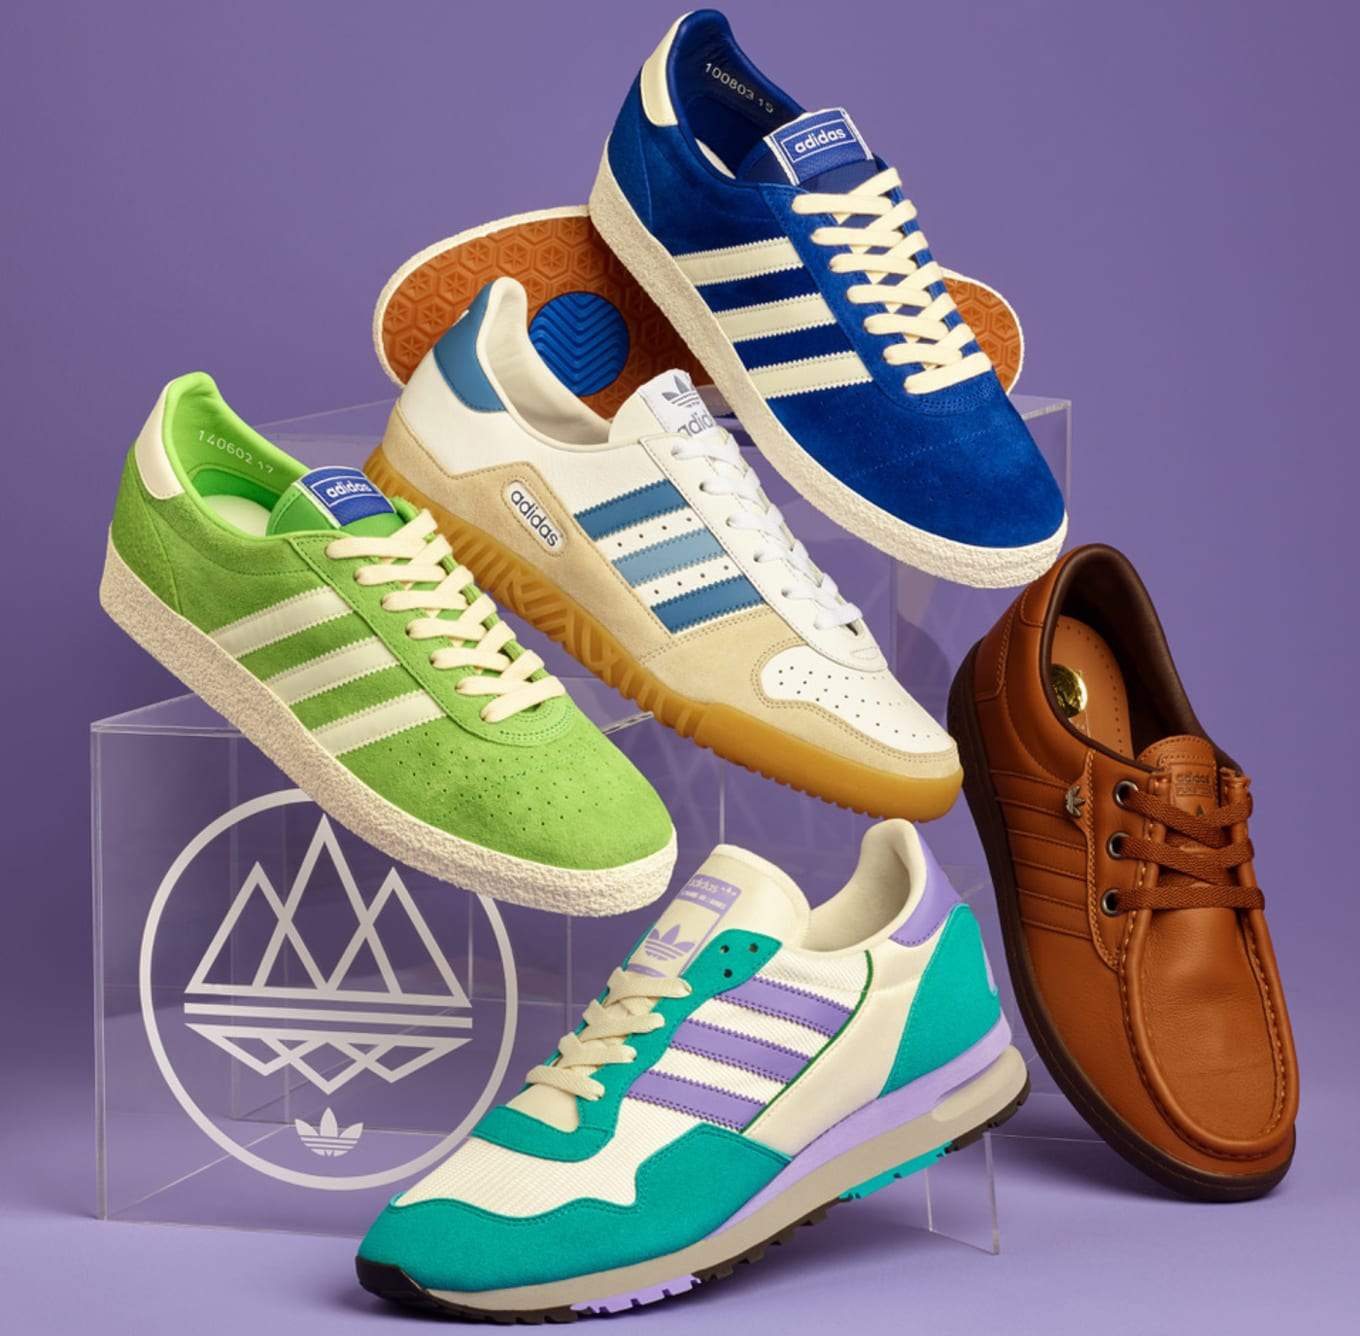 5254e4f451 Adidas Spezial Fall Winter 2018  Acid Winter  Collection Release ...